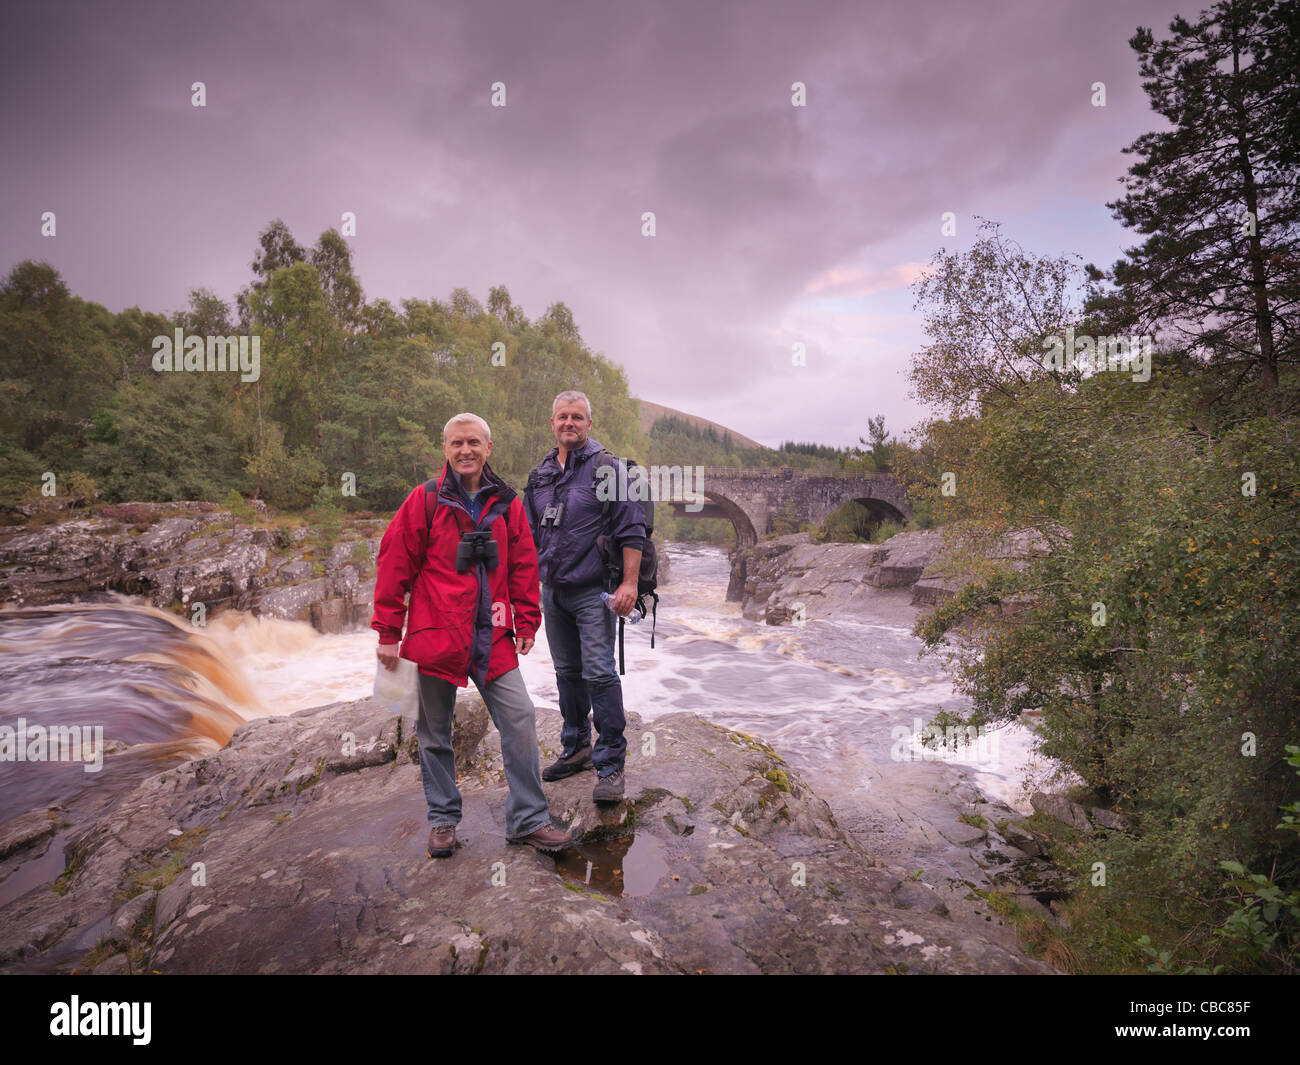 Hikers standing by rocky river - Stock Image